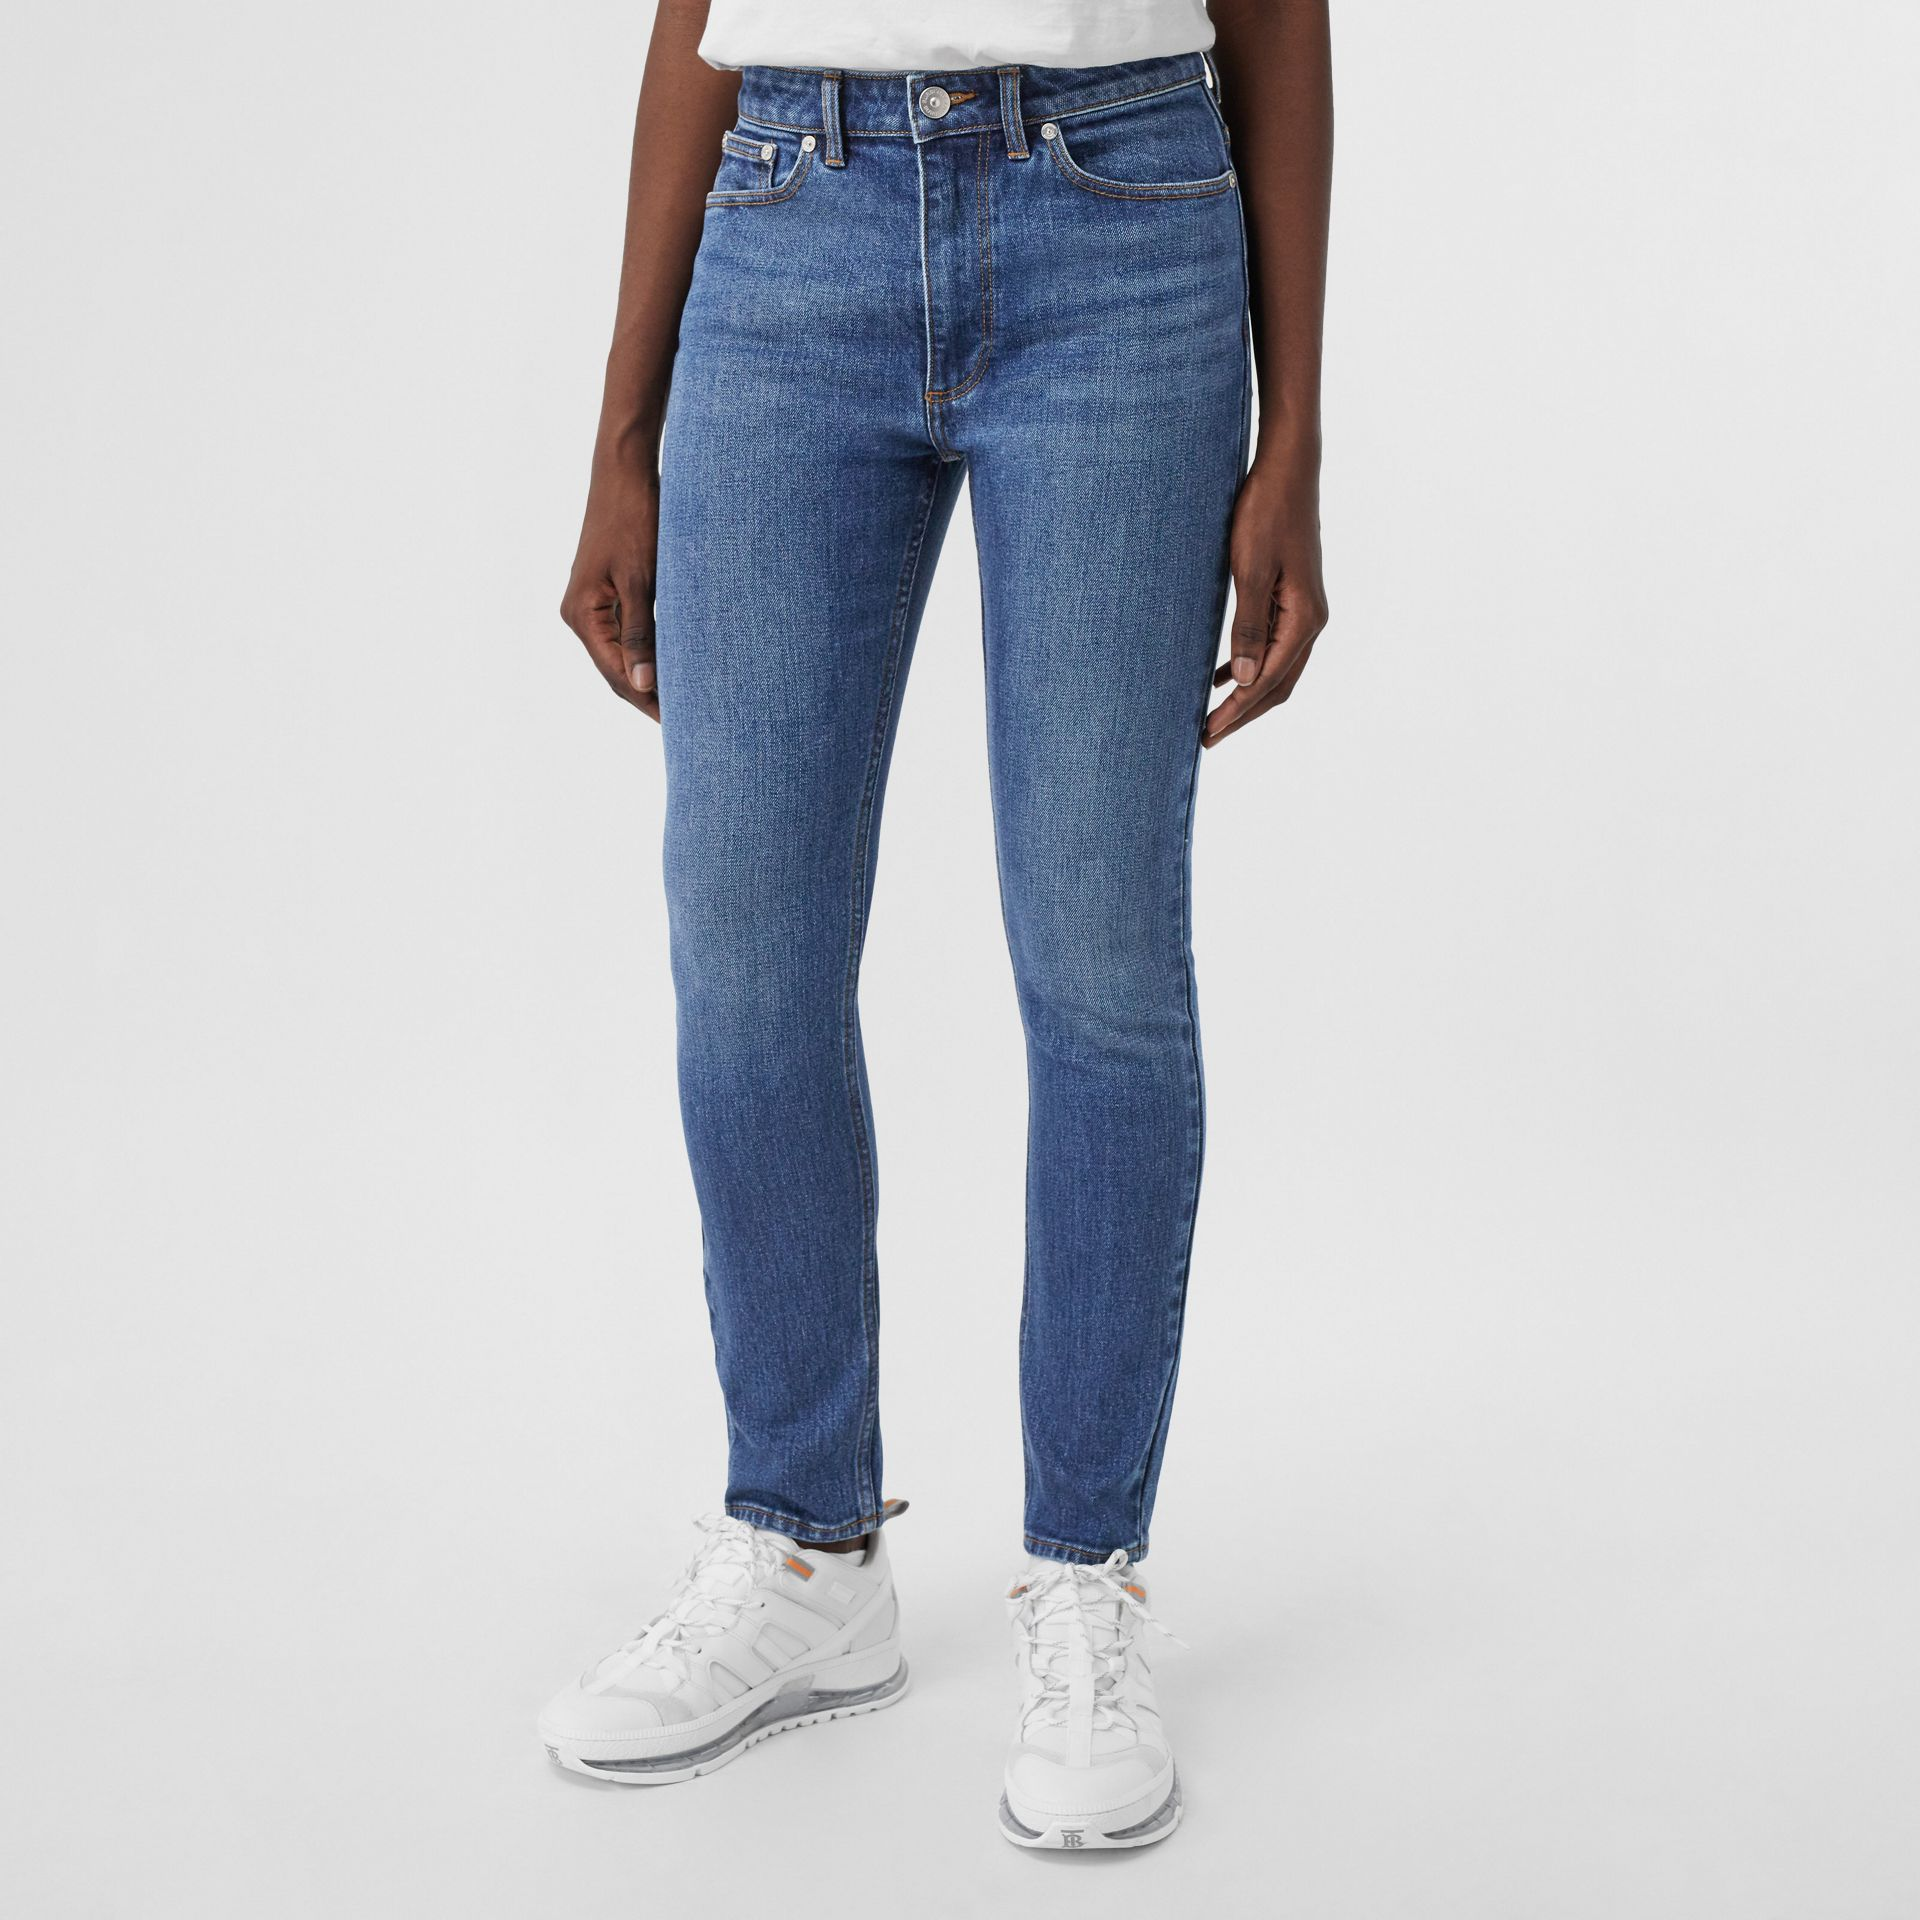 Skinny Fit Japanese Denim Jeans in Indigo Blue - Women | Burberry - gallery image 4